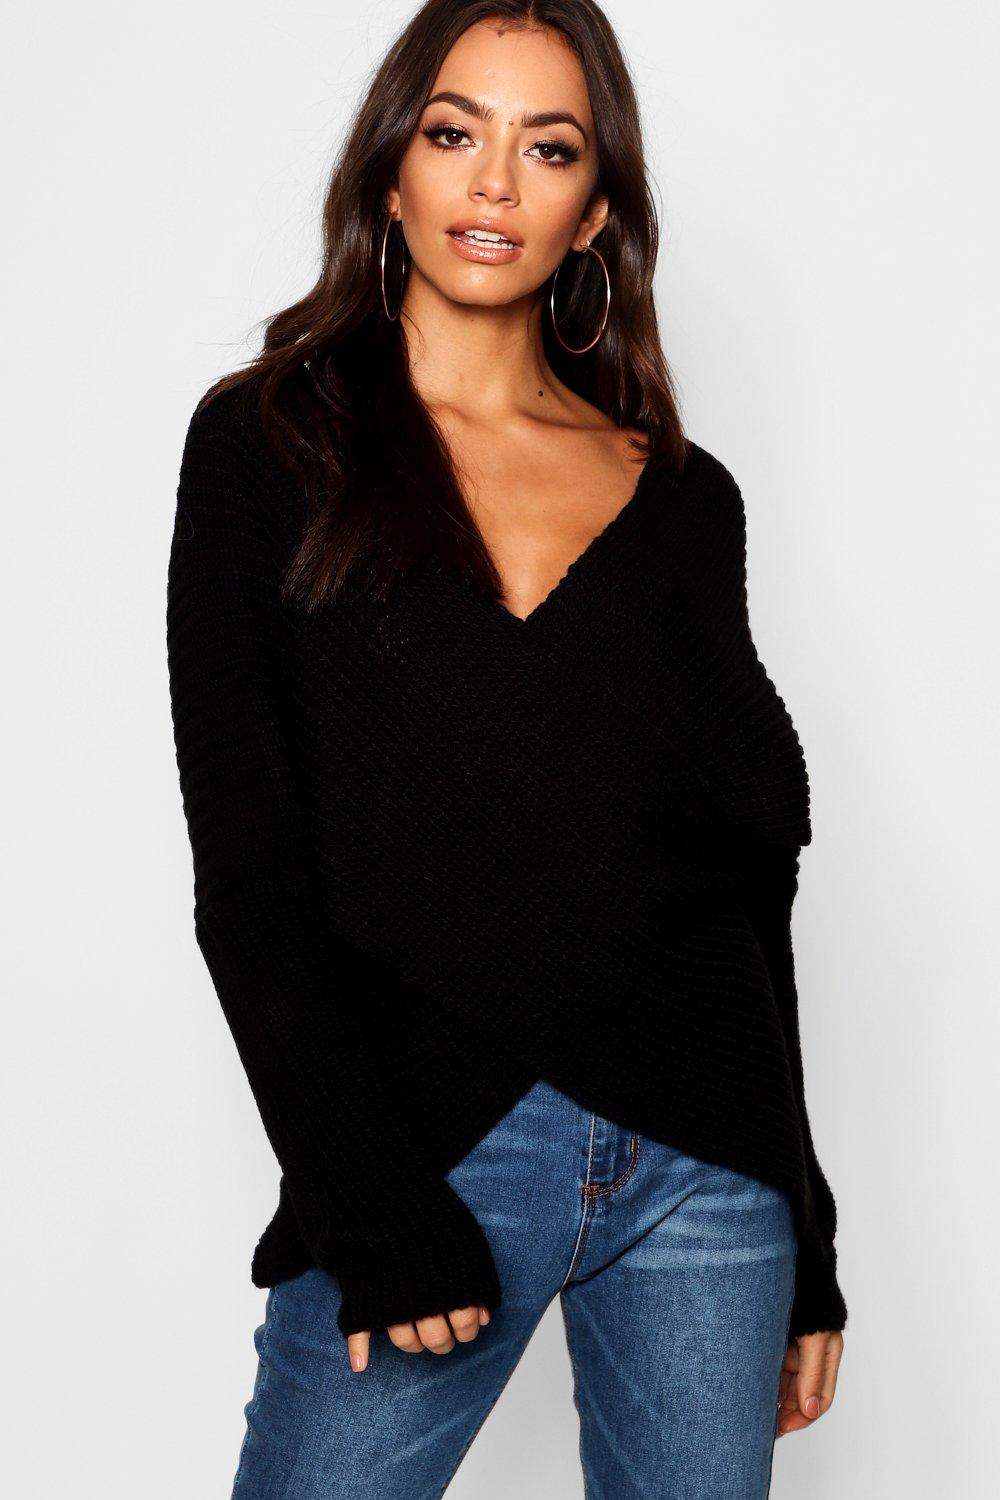 Jumper Back Jumper Knitted Wrap Back Wrap black Knitted black Back Knitted Wrap black Jumper EHWAqEdR